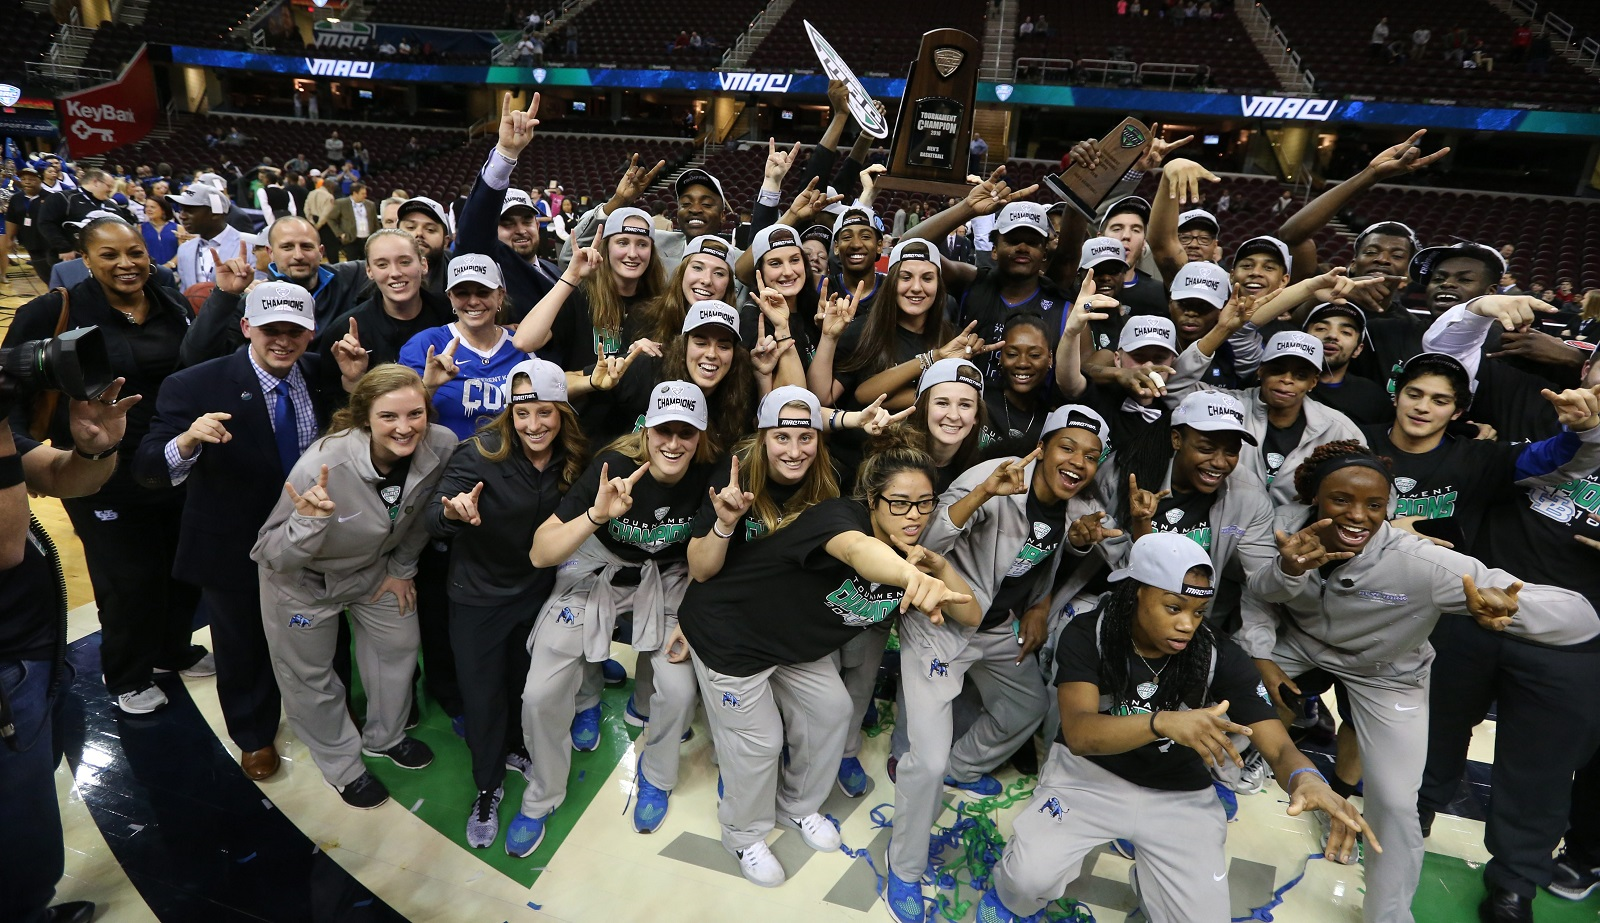 The University at Buffalo men and women's basketball teams pose in the same photo after both won their conference tournaments in Cleveland. (James P. McCoy/ Buffalo News)